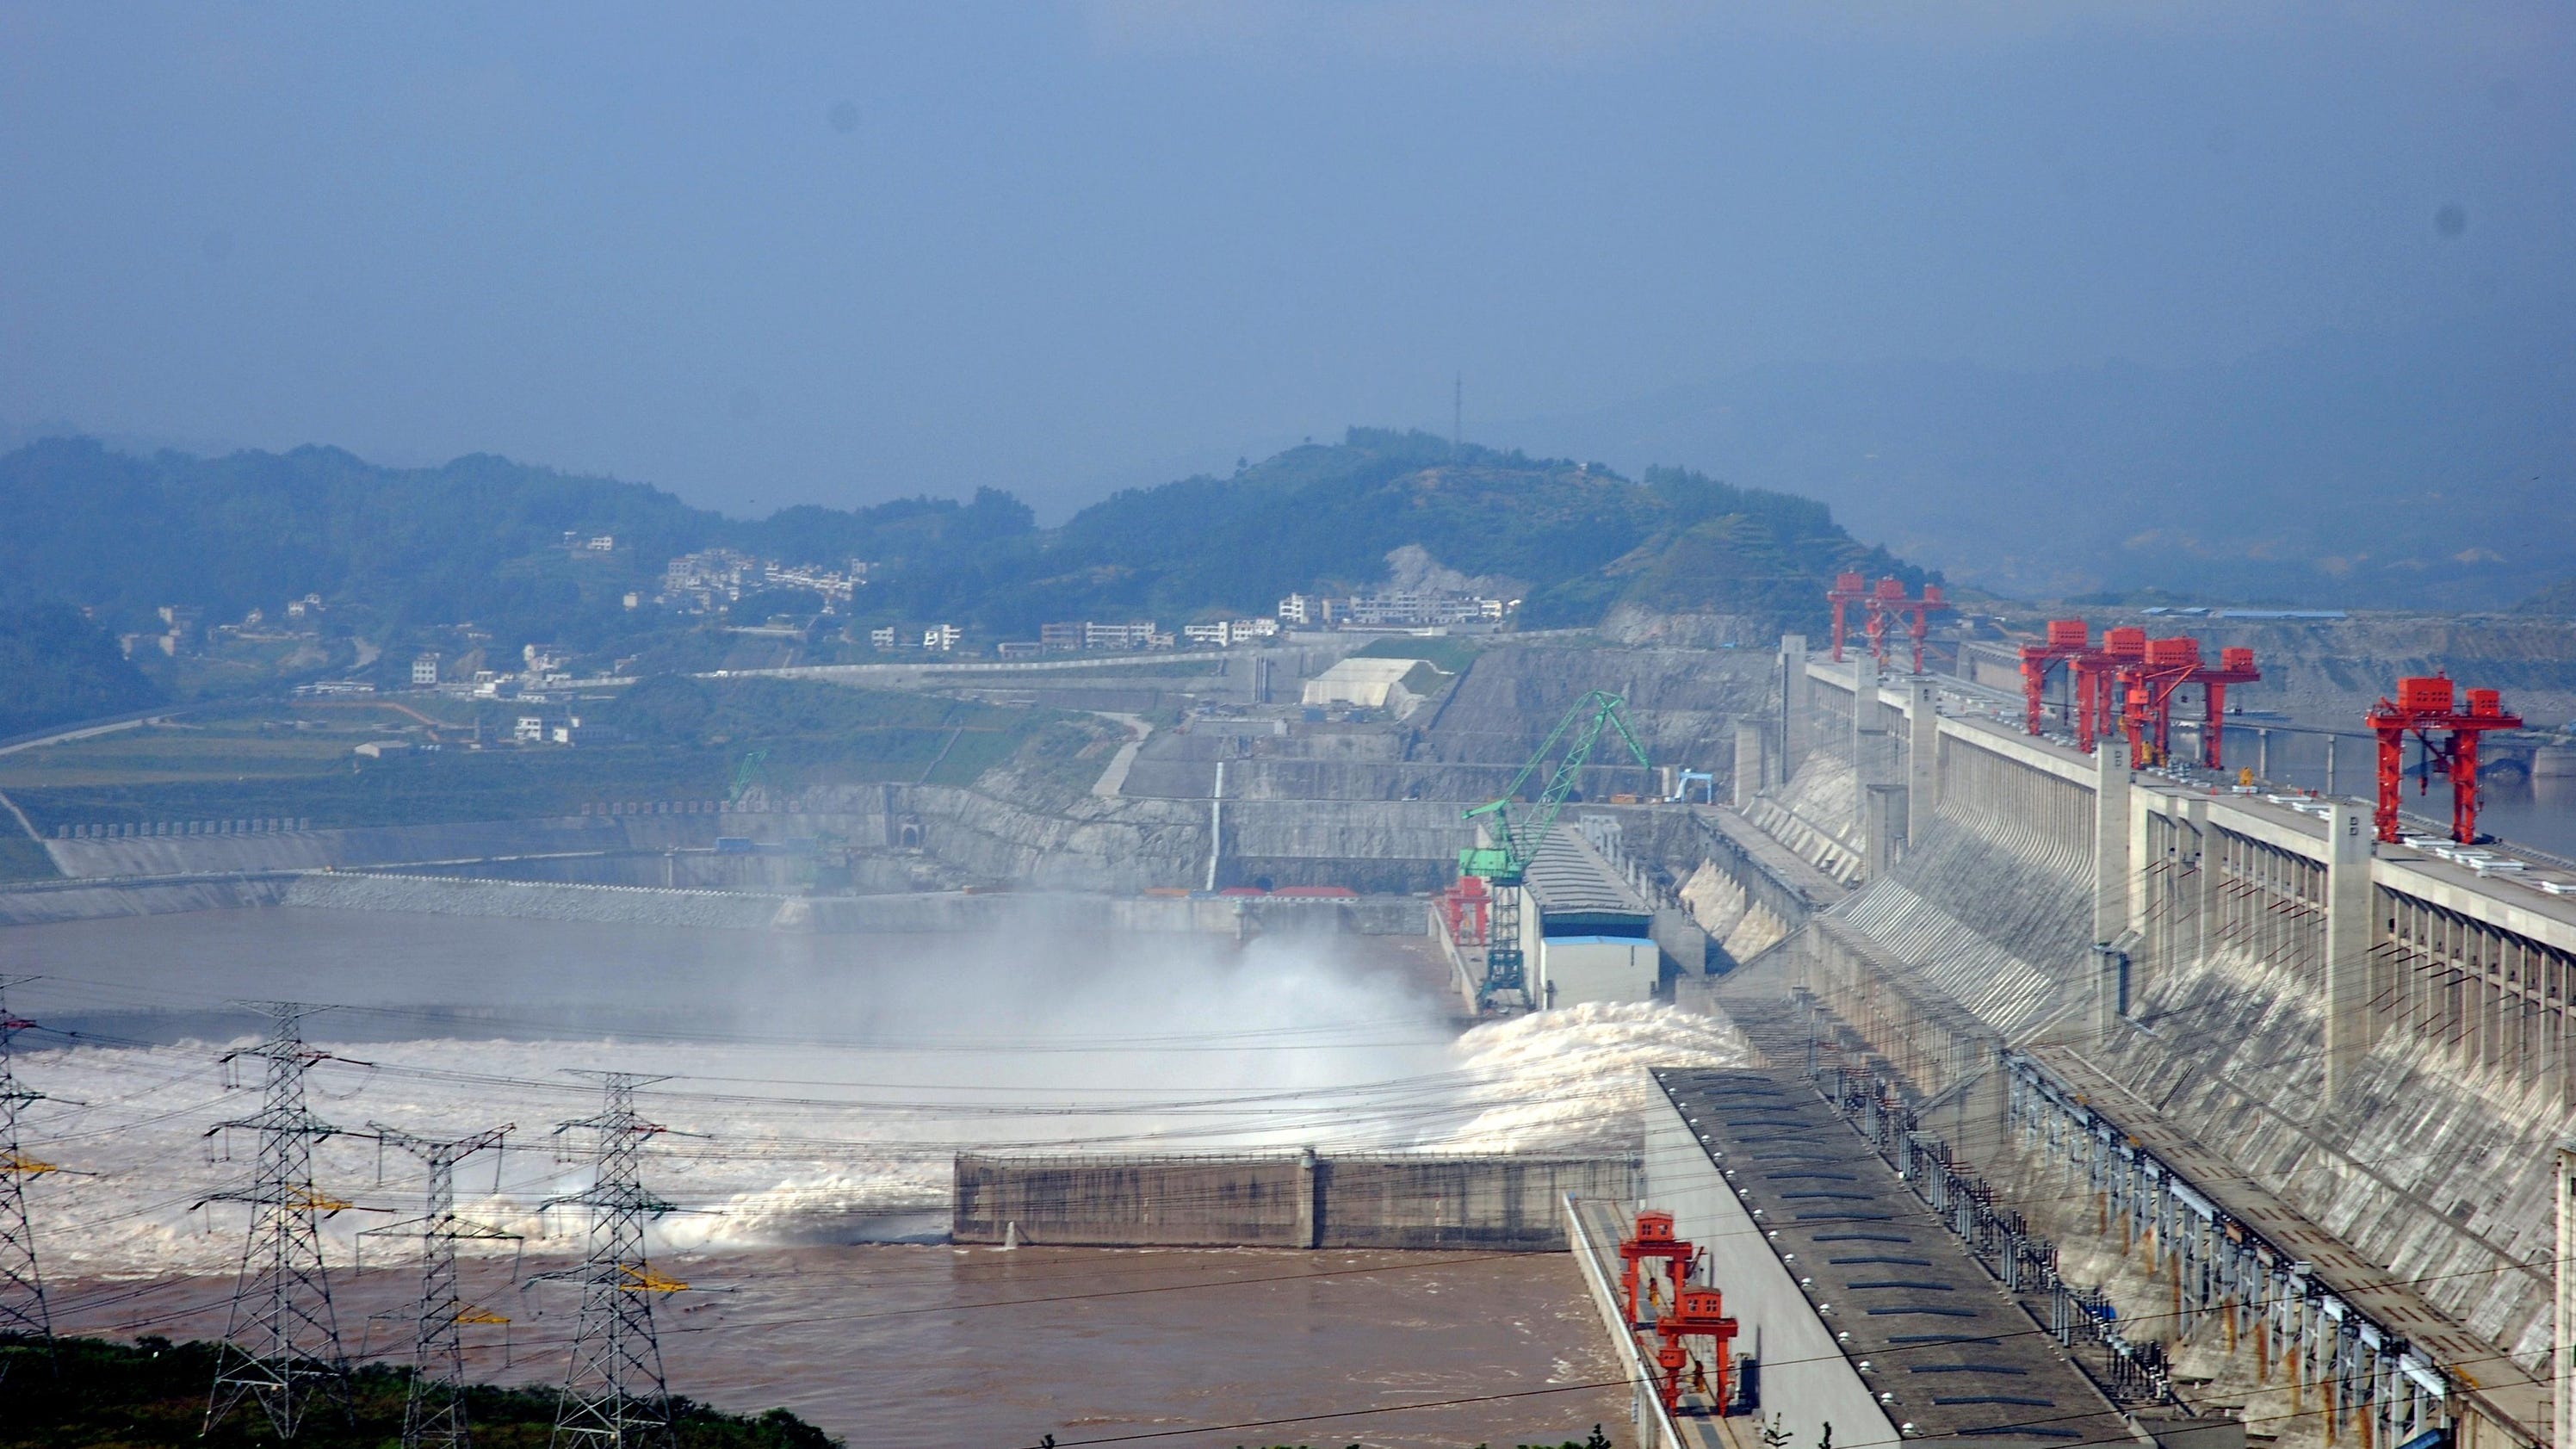 Three gorges dam project china s biggest project since the great wall - Three Gorges Dam Project China S Biggest Project Since The Great Wall 5